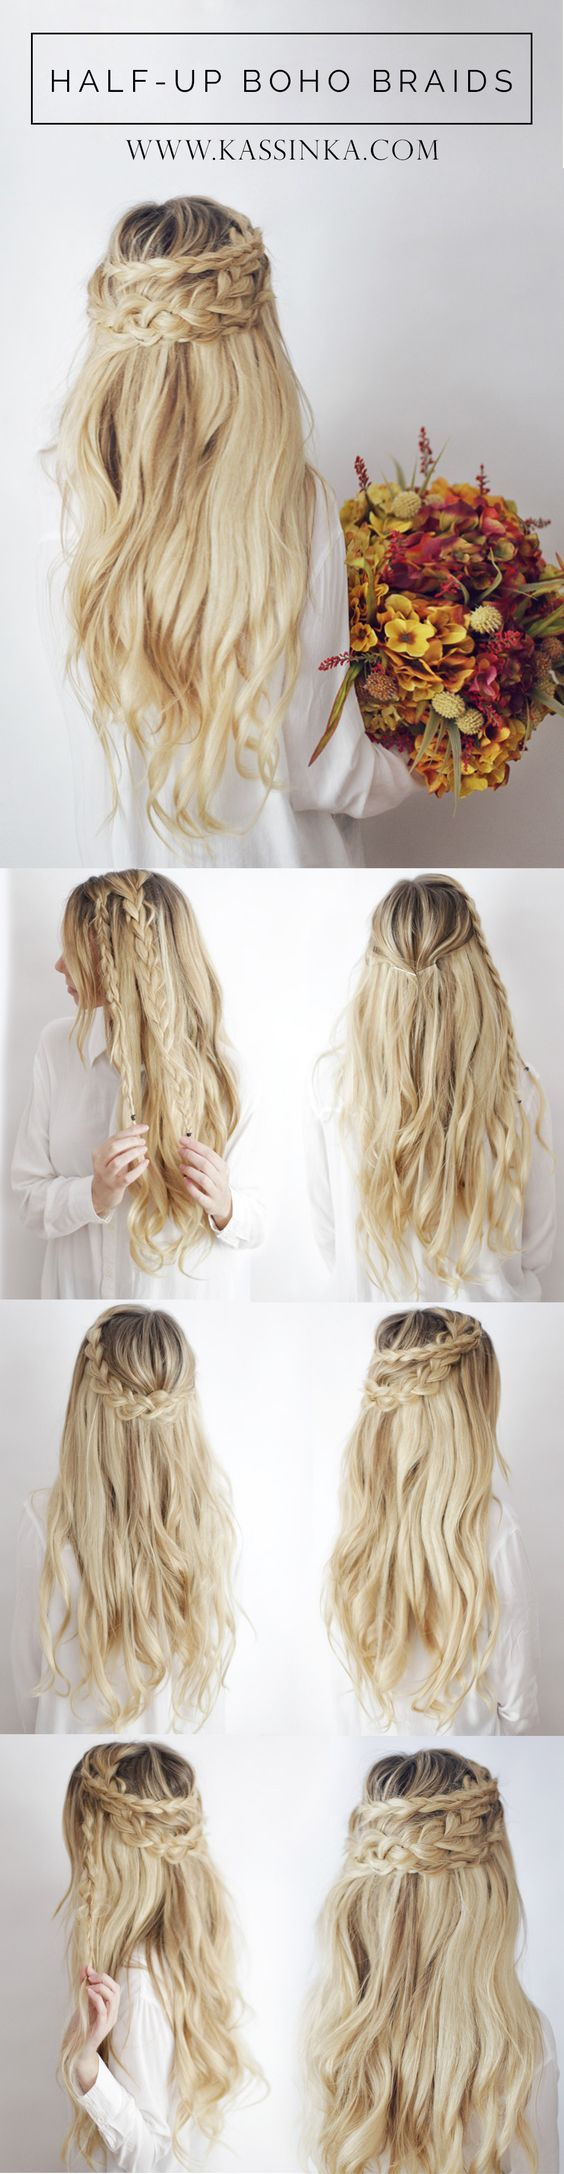 649 best {Good Hair Day} images on Pinterest | Hair cut, Hair ideas ...